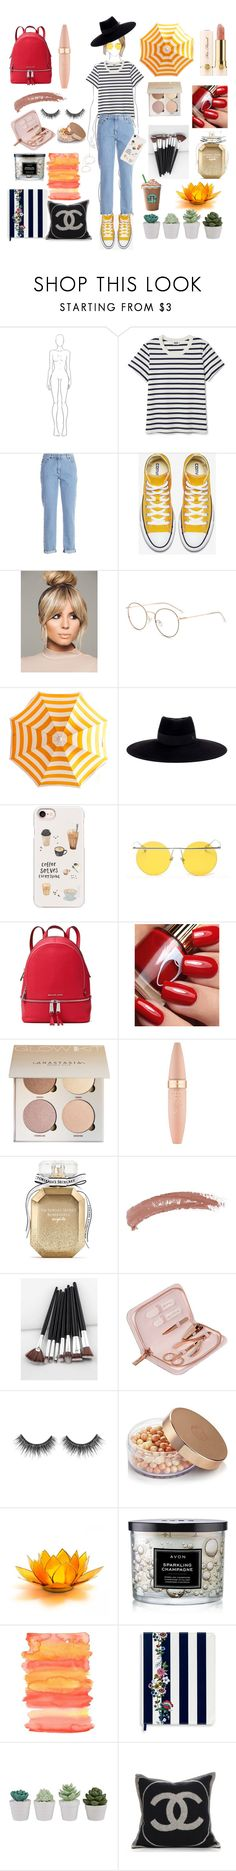 """Rainy days"" by sofivasiliu6 ❤ liked on Polyvore featuring beauty, Moschino, Maison Michel, Casetify, LMNT, MICHAEL Michael Kors, Too Faced Cosmetics, Maybelline, Victoria's Secret and Topshop"